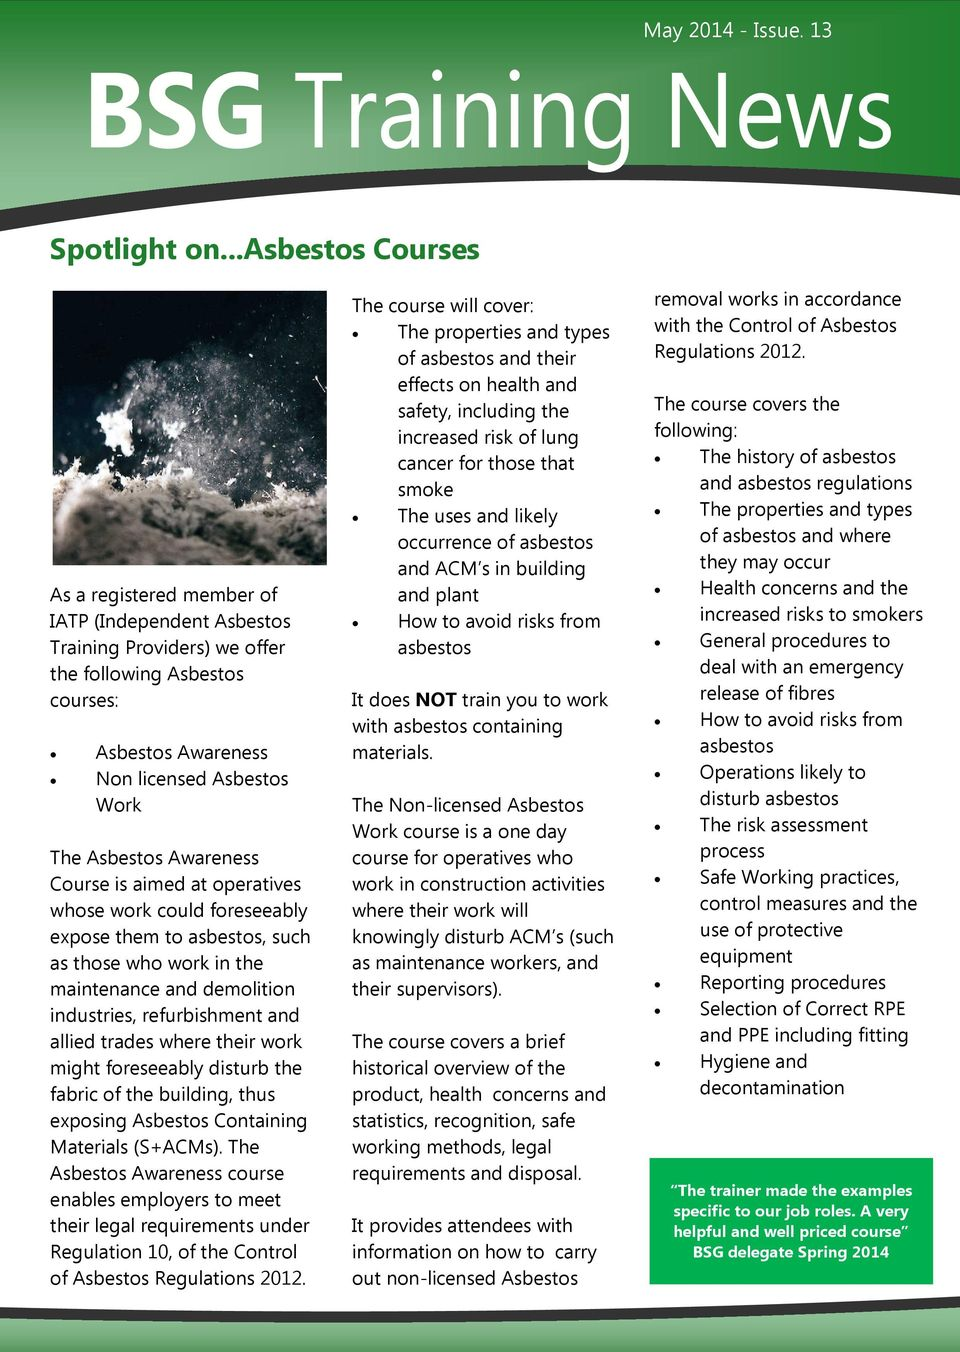 Awareness Course is aimed at operatives whose work could foreseeably expose them to asbestos, such as those who work in the maintenance and demolition industries, refurbishment and allied trades